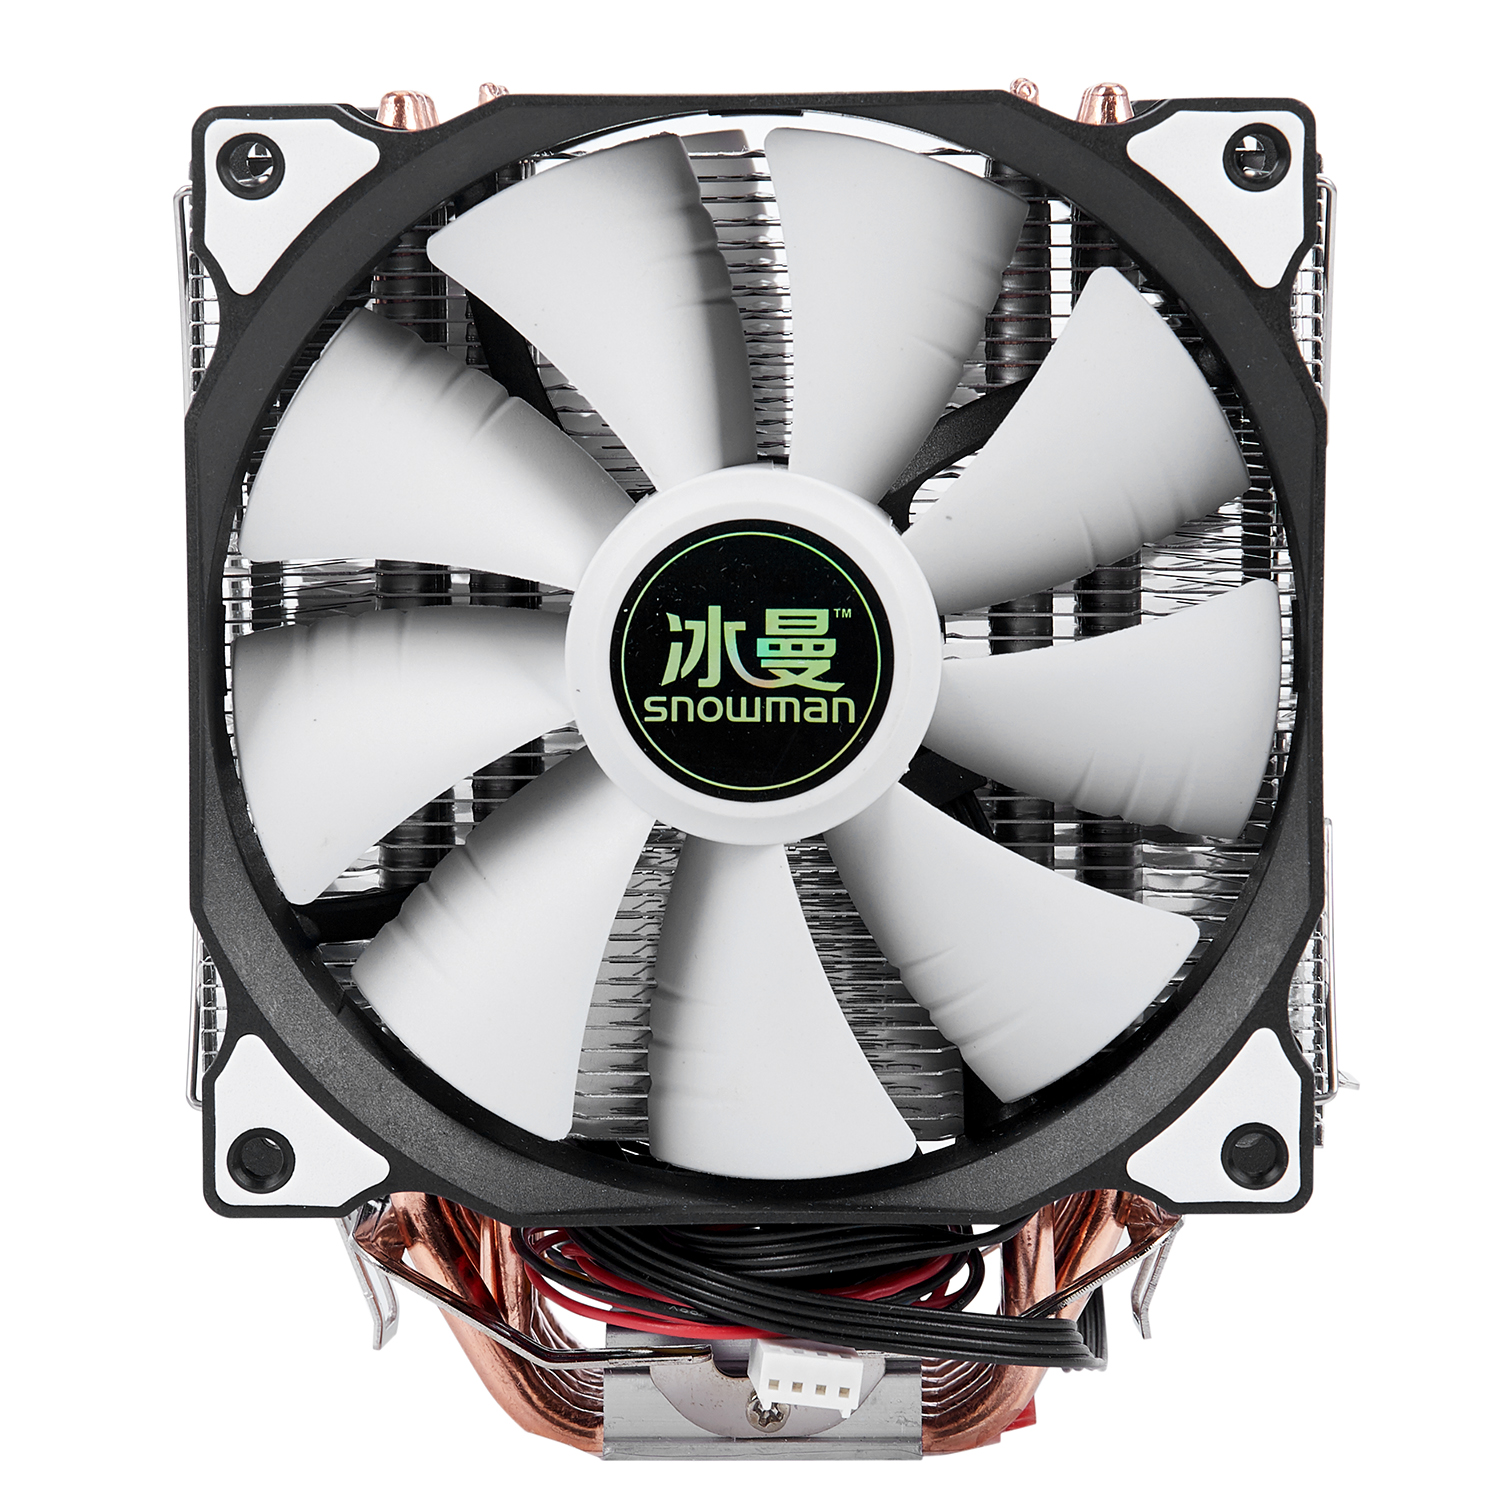 SNOWMAN 4PIN CPU cooler 6 heatpipe Double fans cooling 12cm fan LGA775 1151 115x 1366 support Intel AMD image